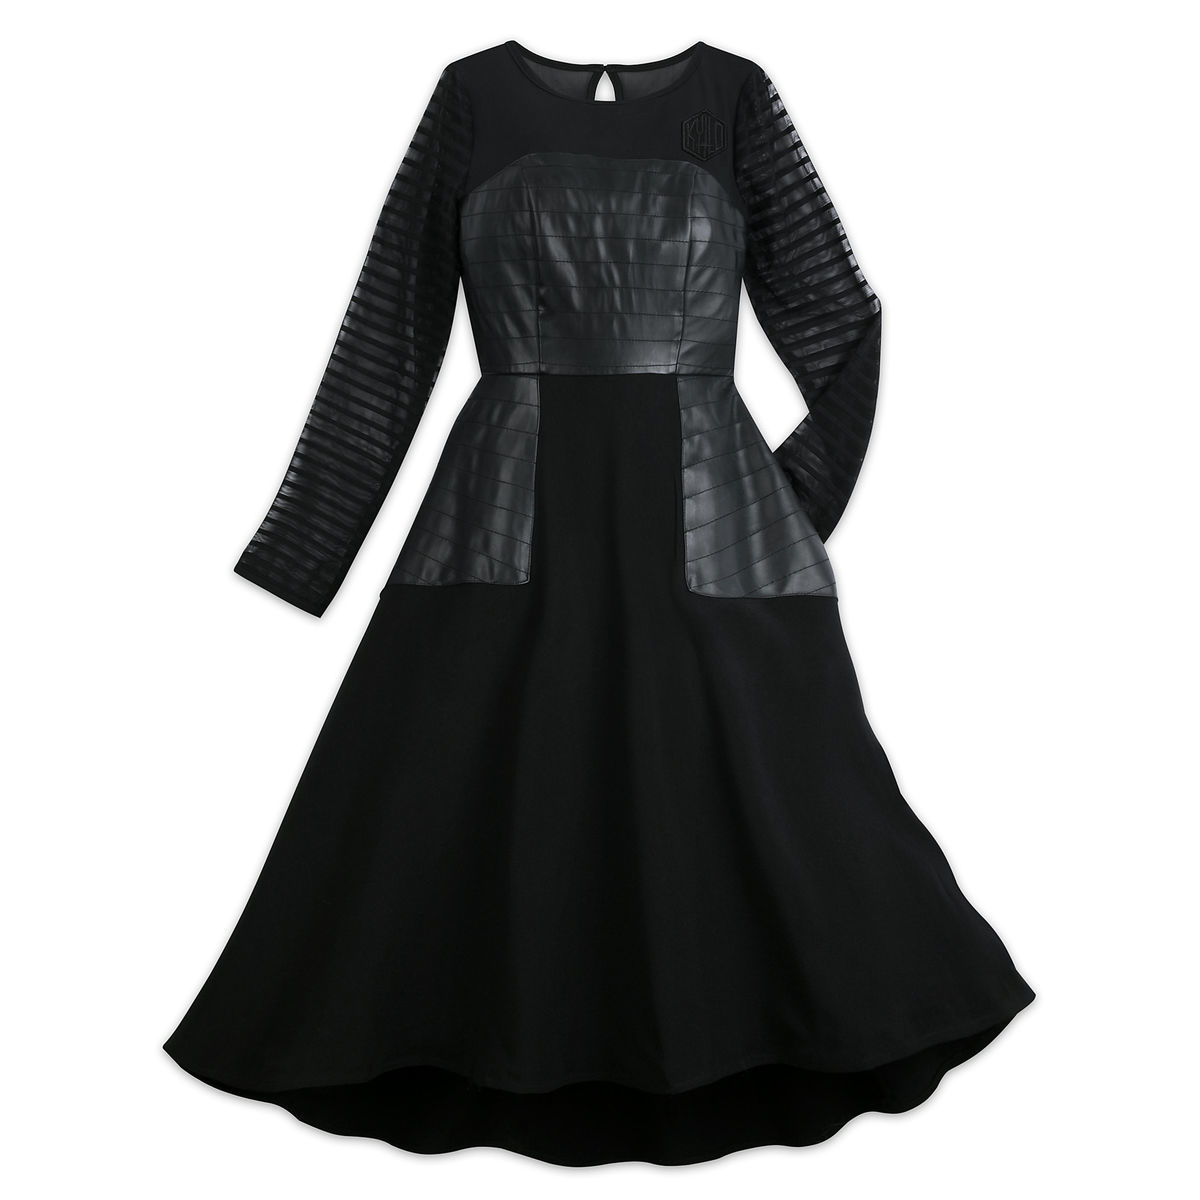 456b65b060875 Product Image of Kylo Ren Dress for Women by Her Universe   1